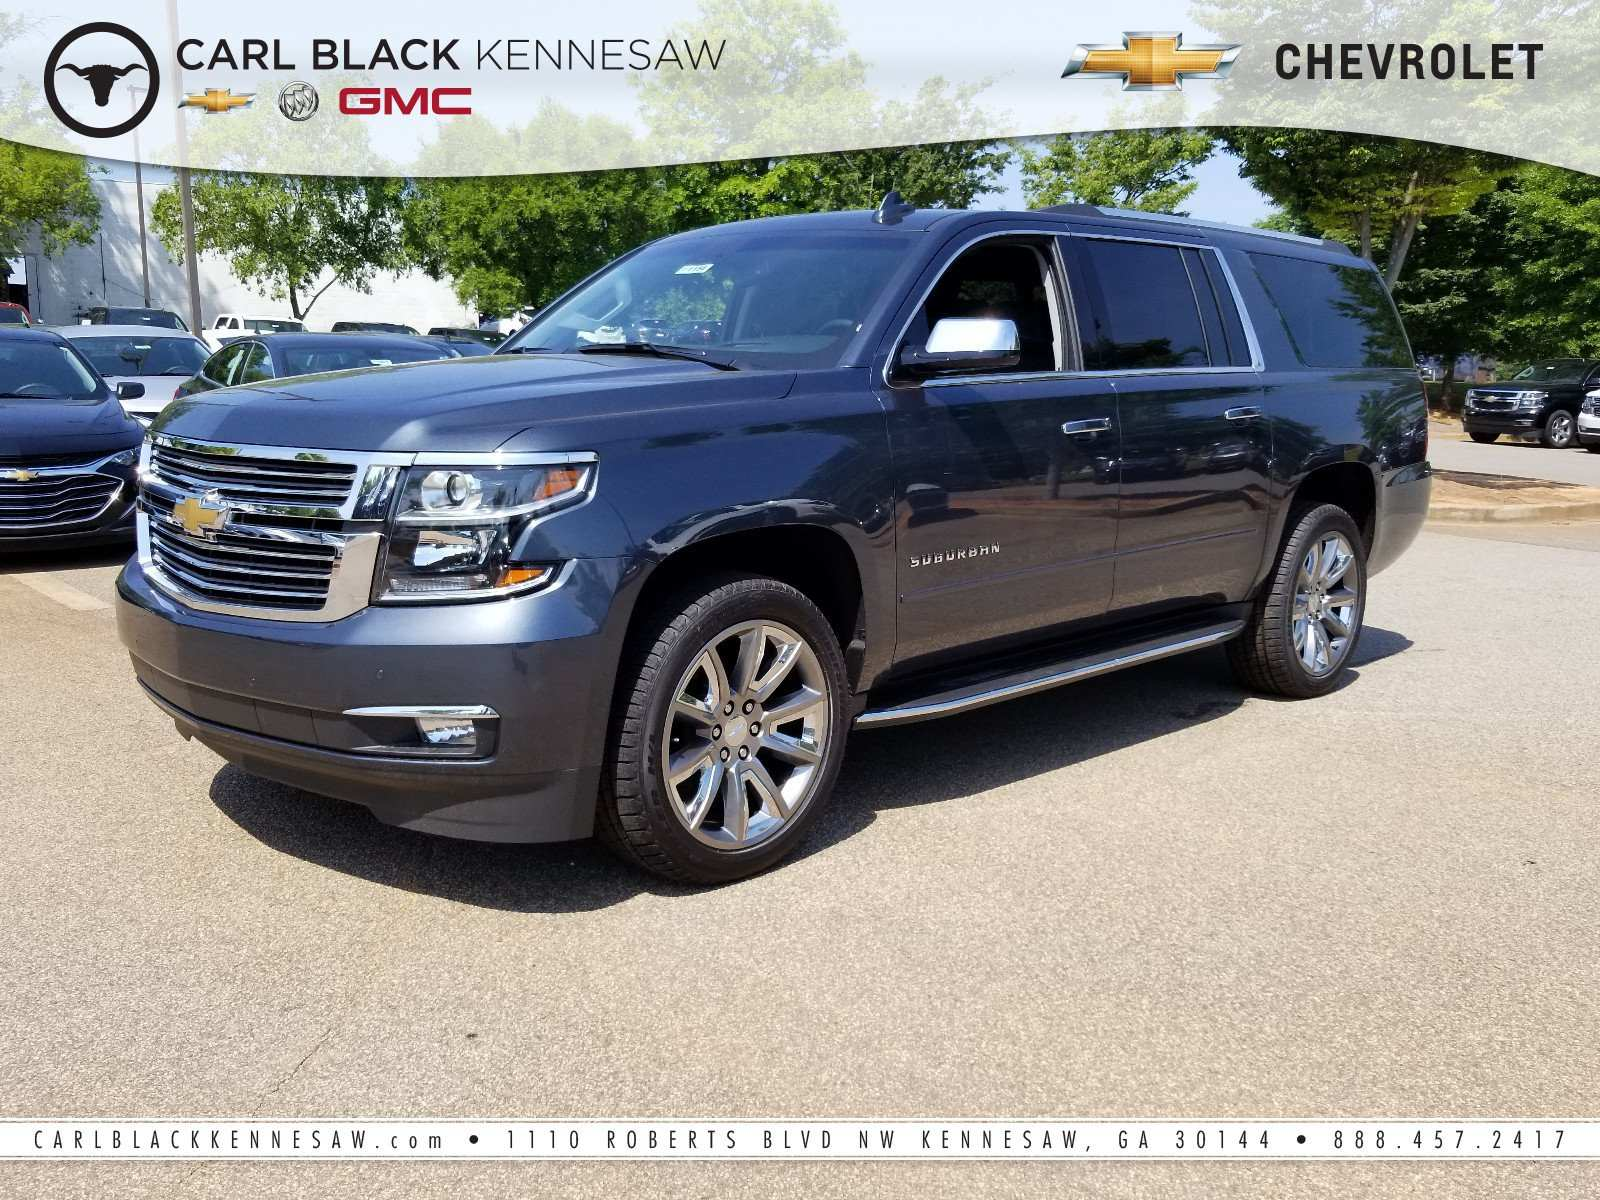 27 All New 2019 Chevy Suburban Speed Test